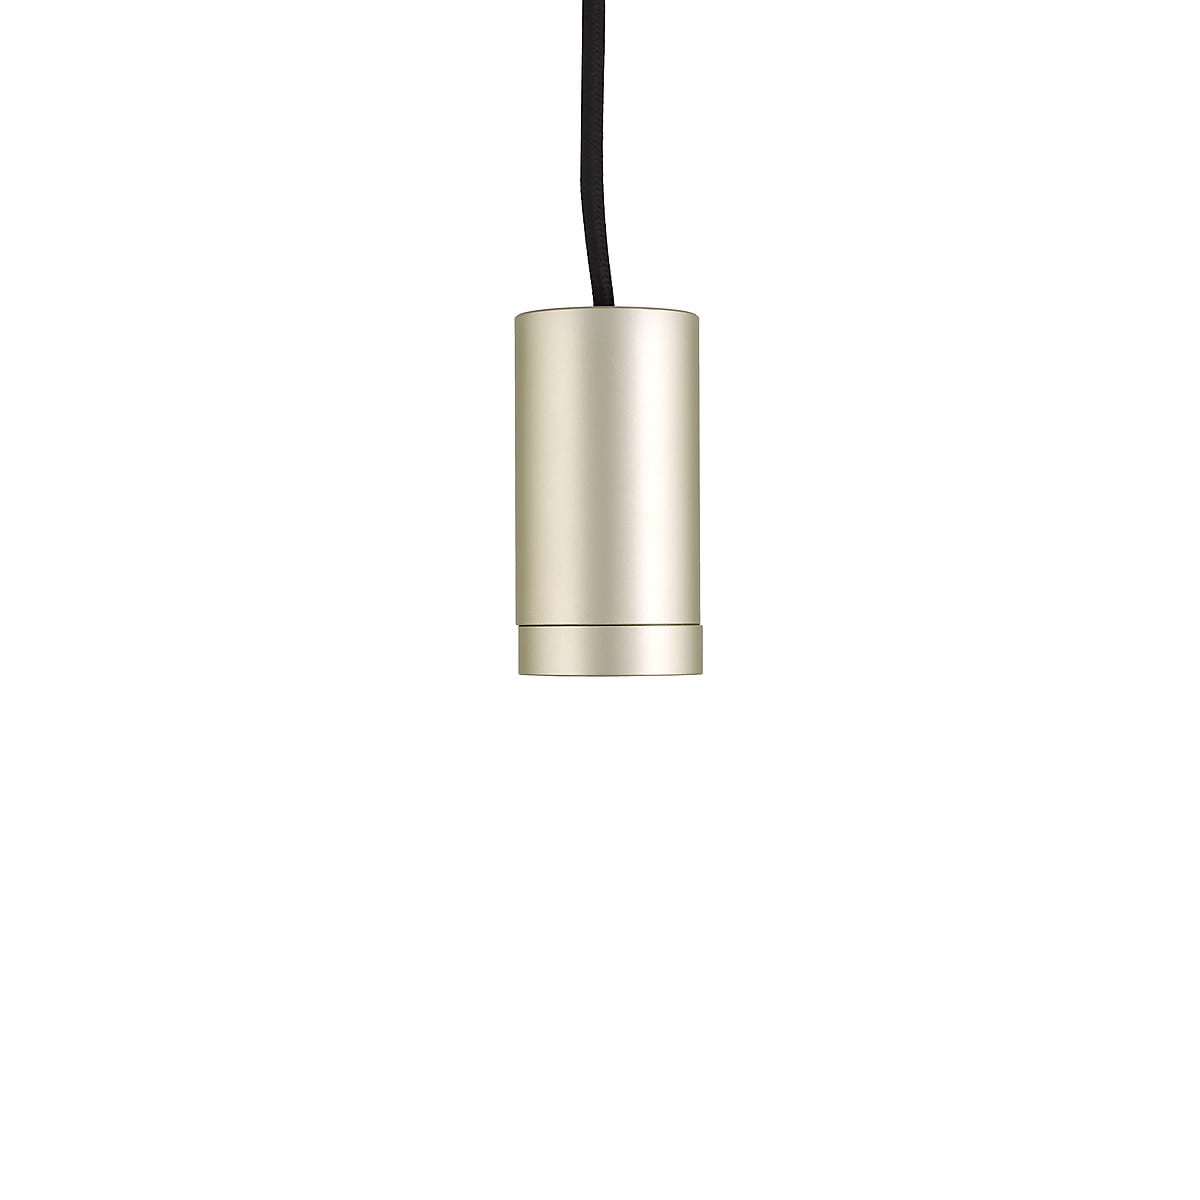 Northlight Fabric Covered Lamp Lead